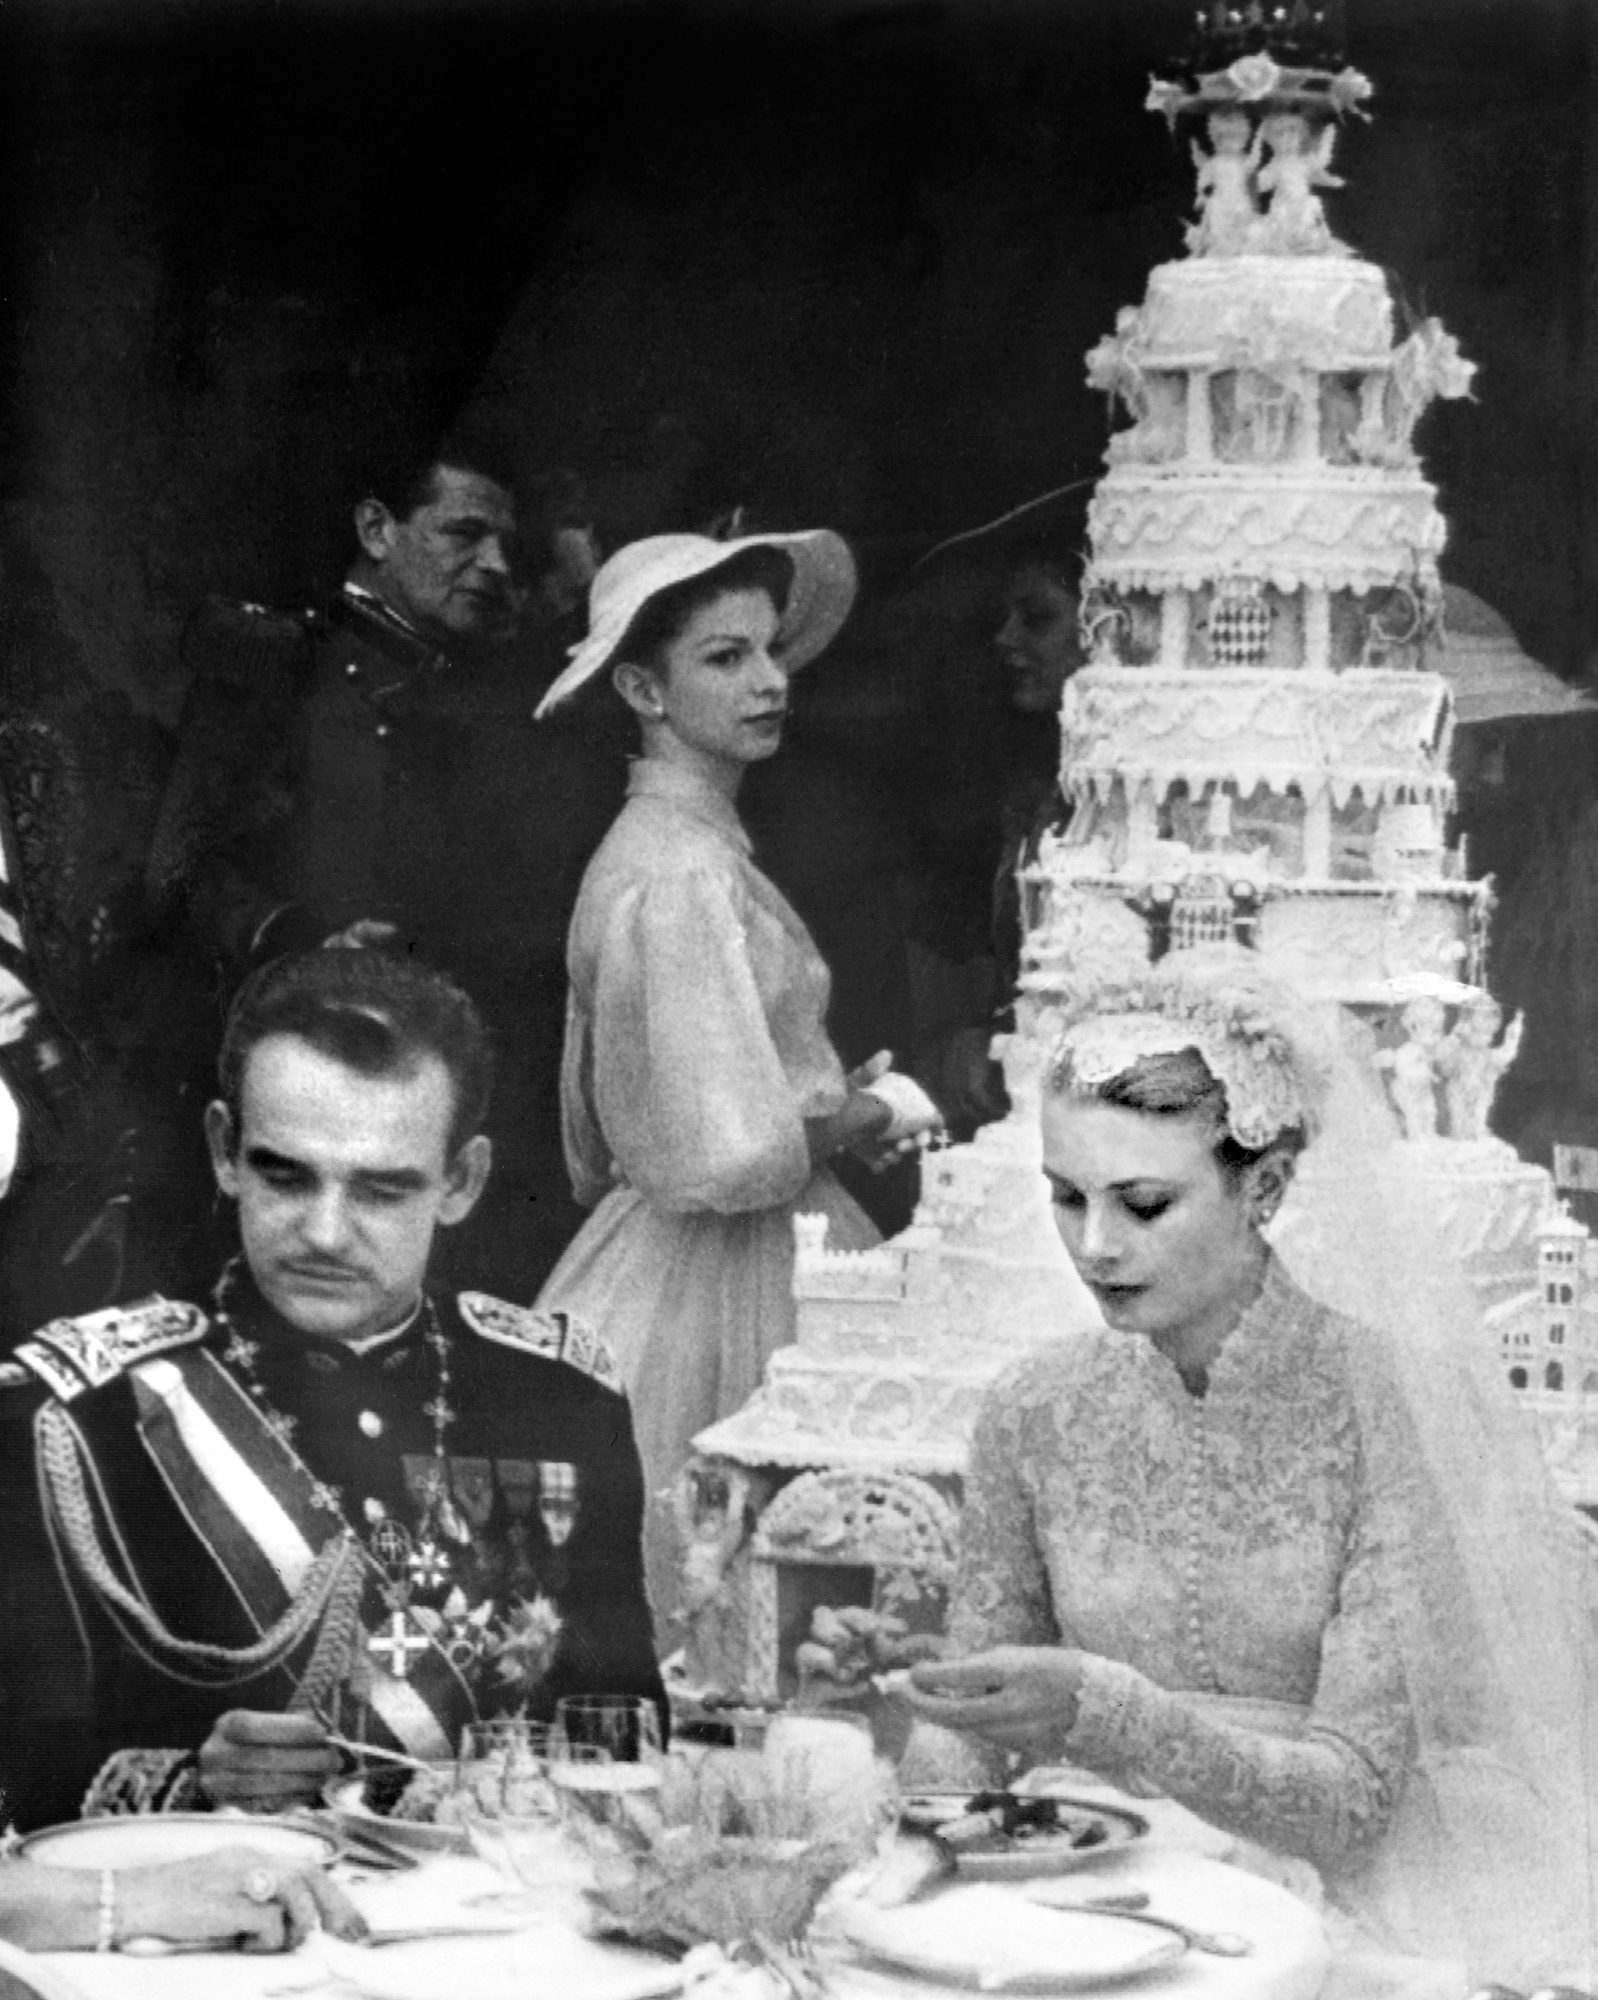 celebrity-vintage-wedding-cakes-grace-kelly-111652580-1015.jpg